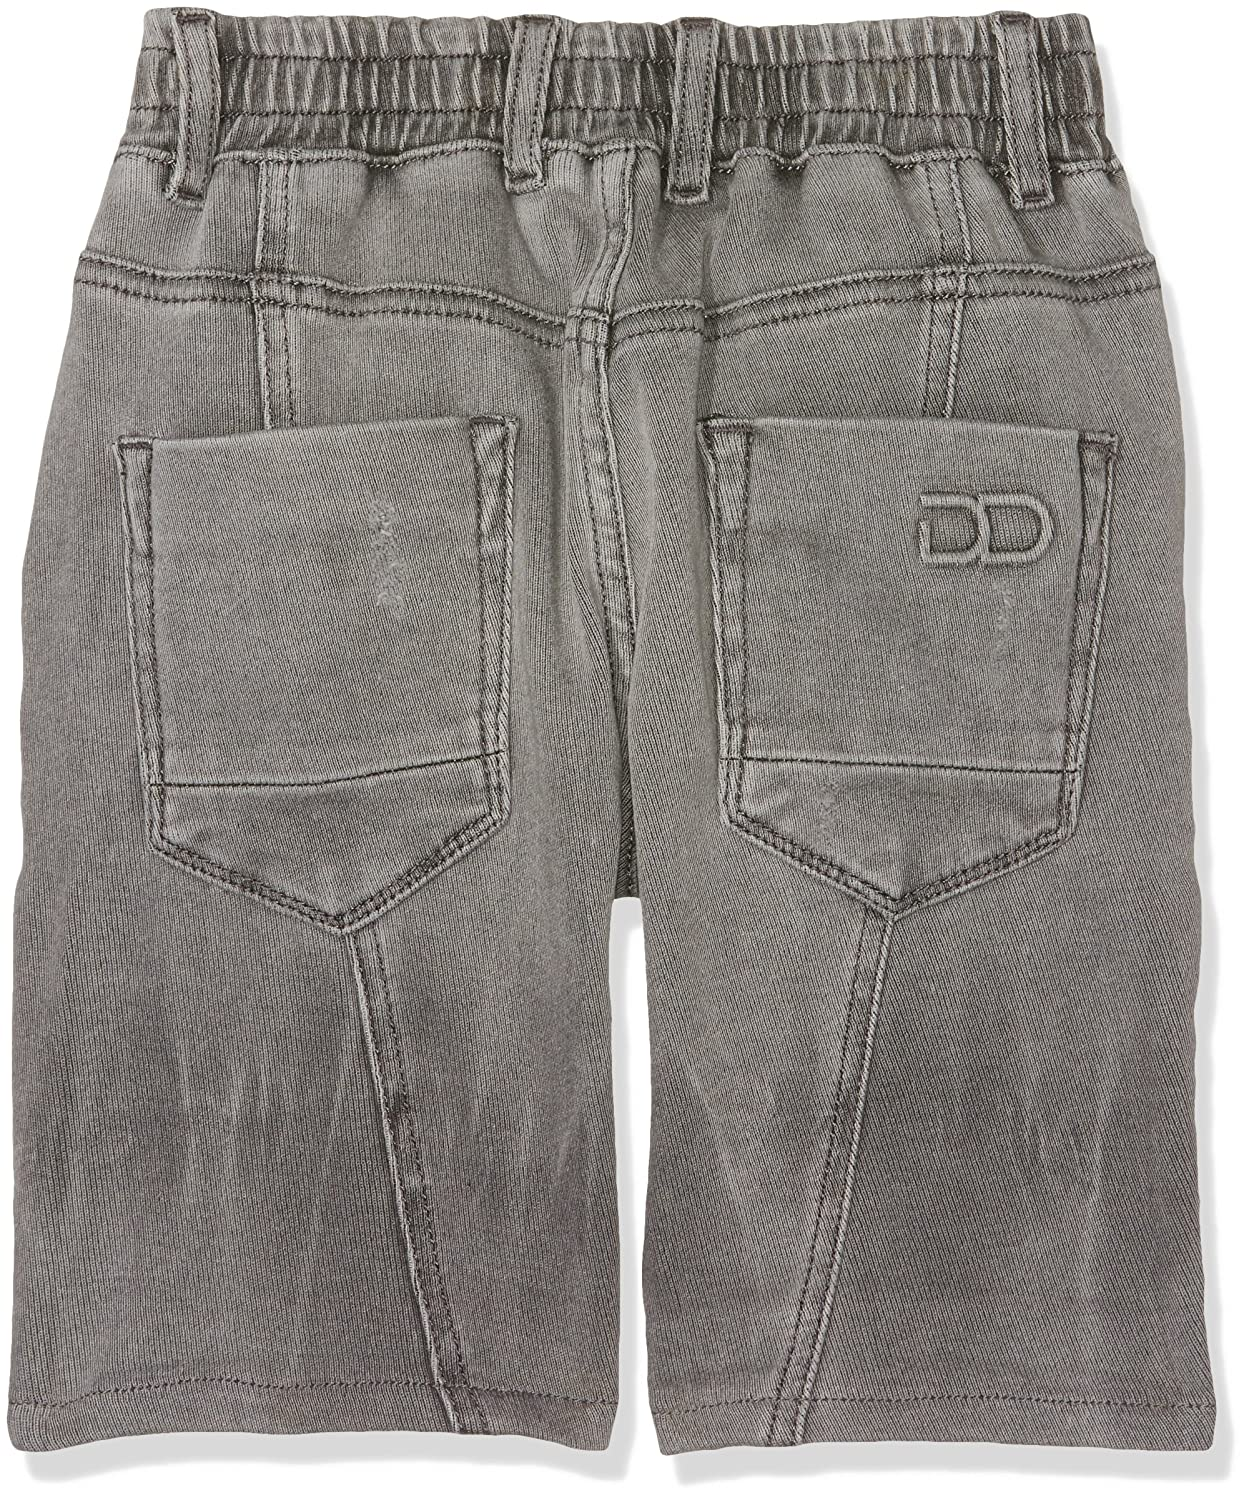 dig.it denim Pantaloncini Bambino